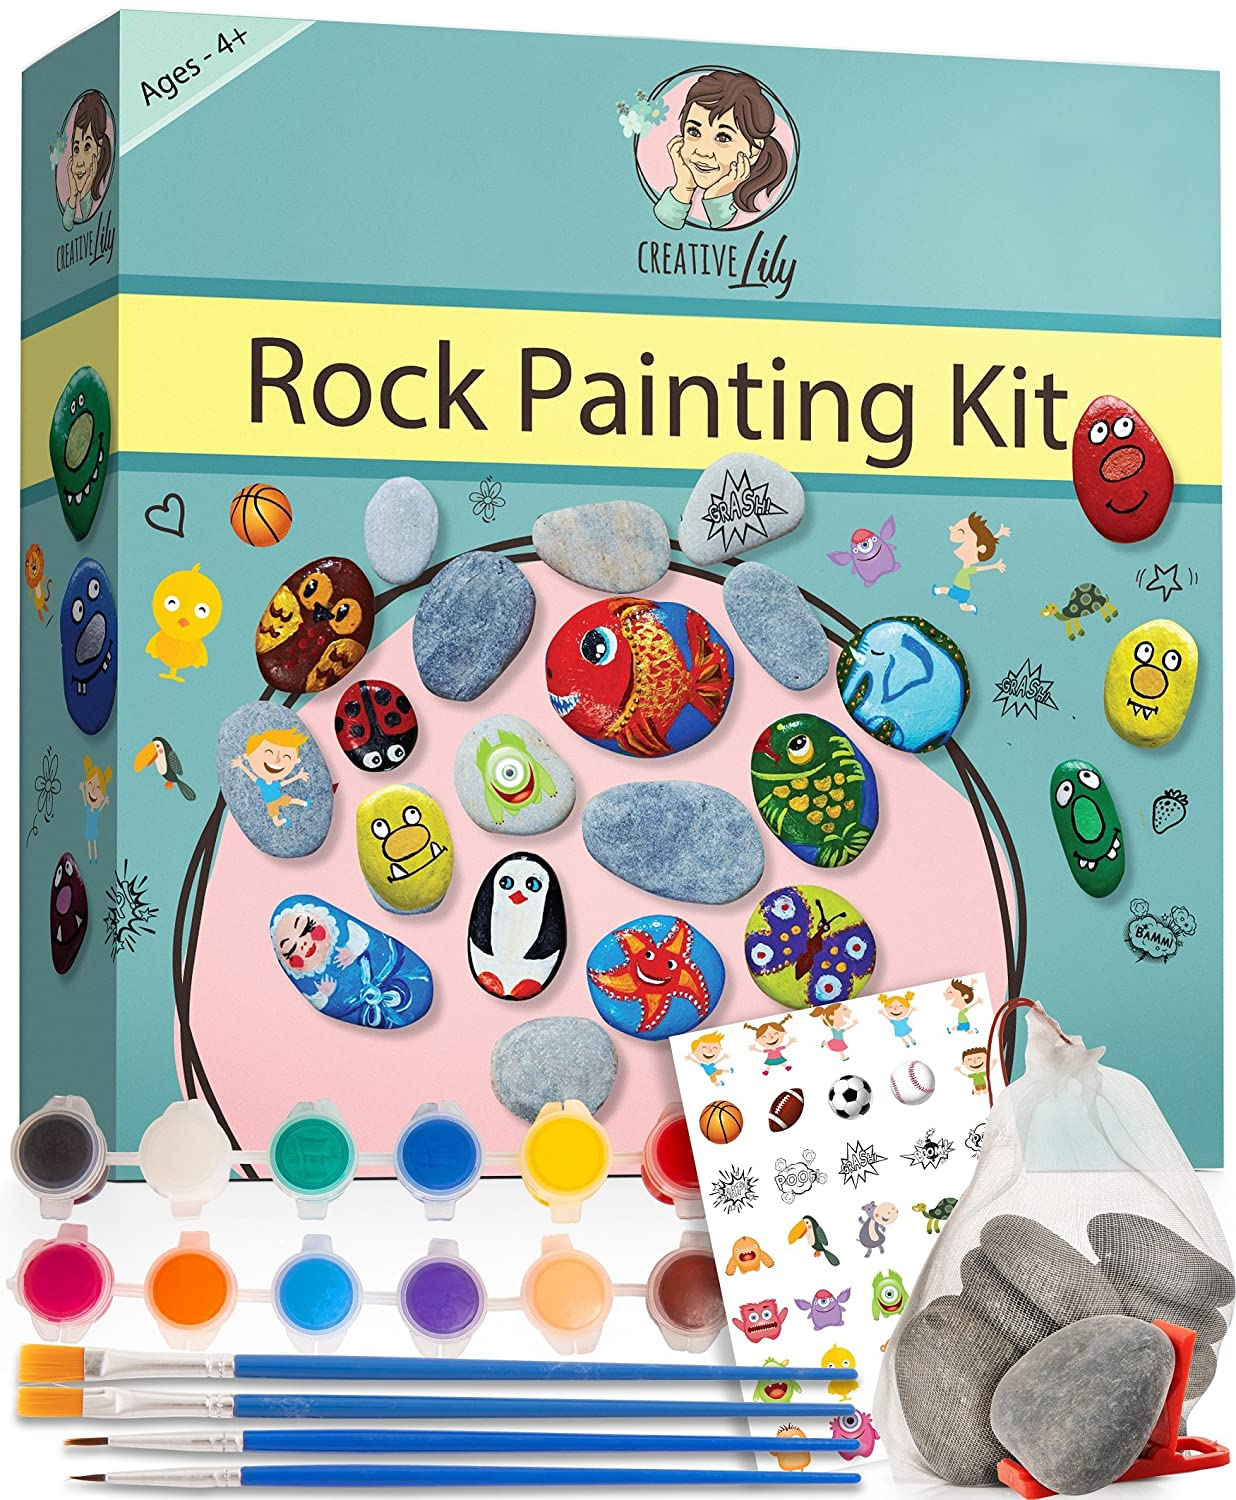 Rock Painting Kit by Creative Lily – Hours of Fun for Kids & Adults Hide and Seek – Complete Set with Rocks, Paints, Transfer Stickers, Paintbrushes, Instruction Guide – Craft Set Perfect for Gifts Ventura